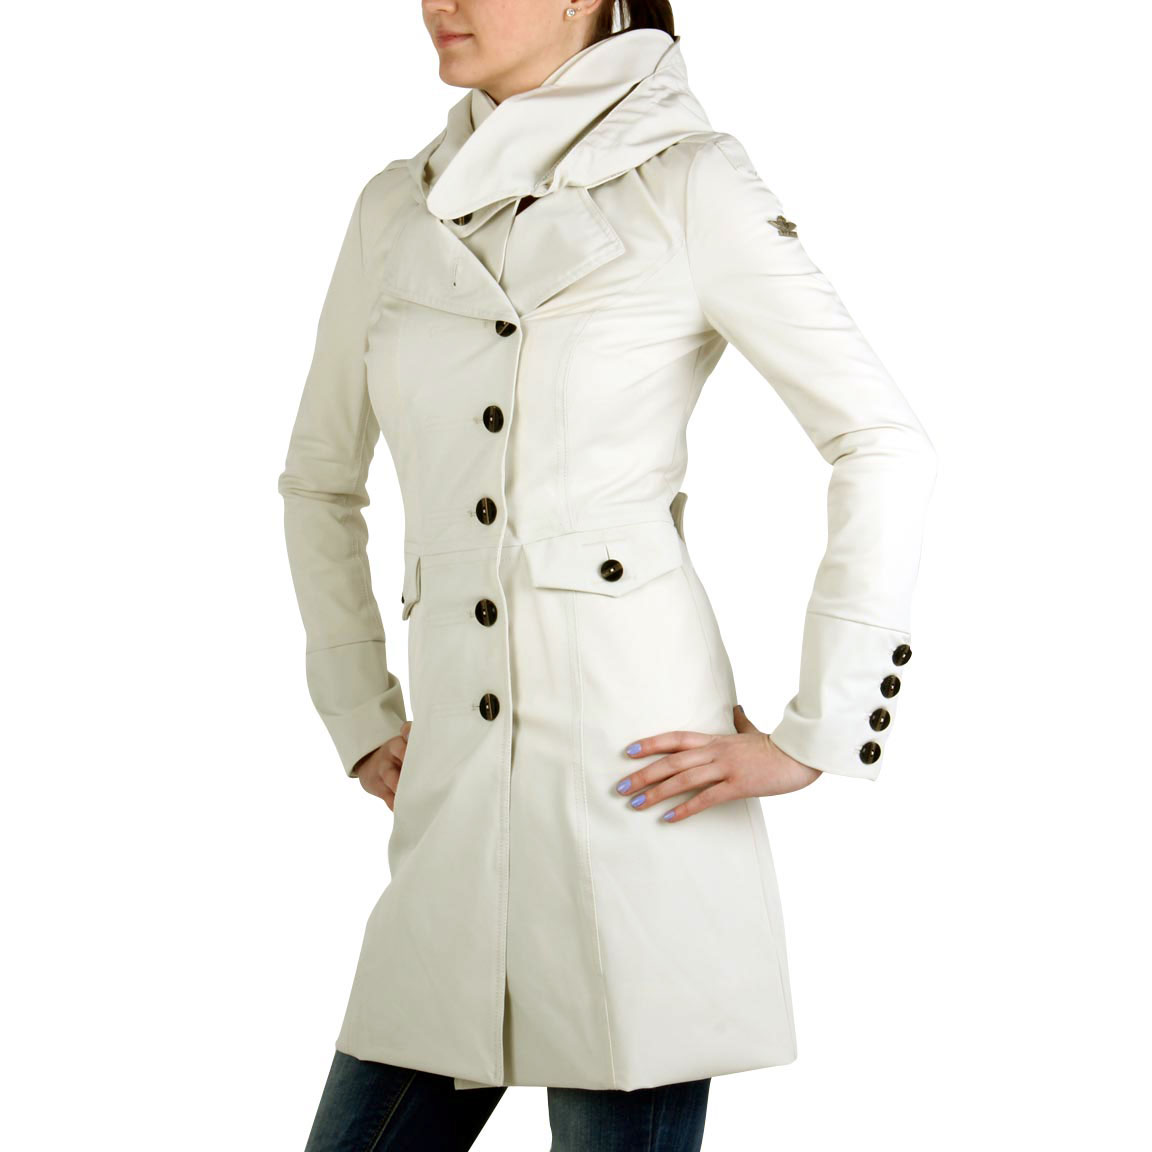 dekher damen sommer trenchcoat vint cream ebay. Black Bedroom Furniture Sets. Home Design Ideas